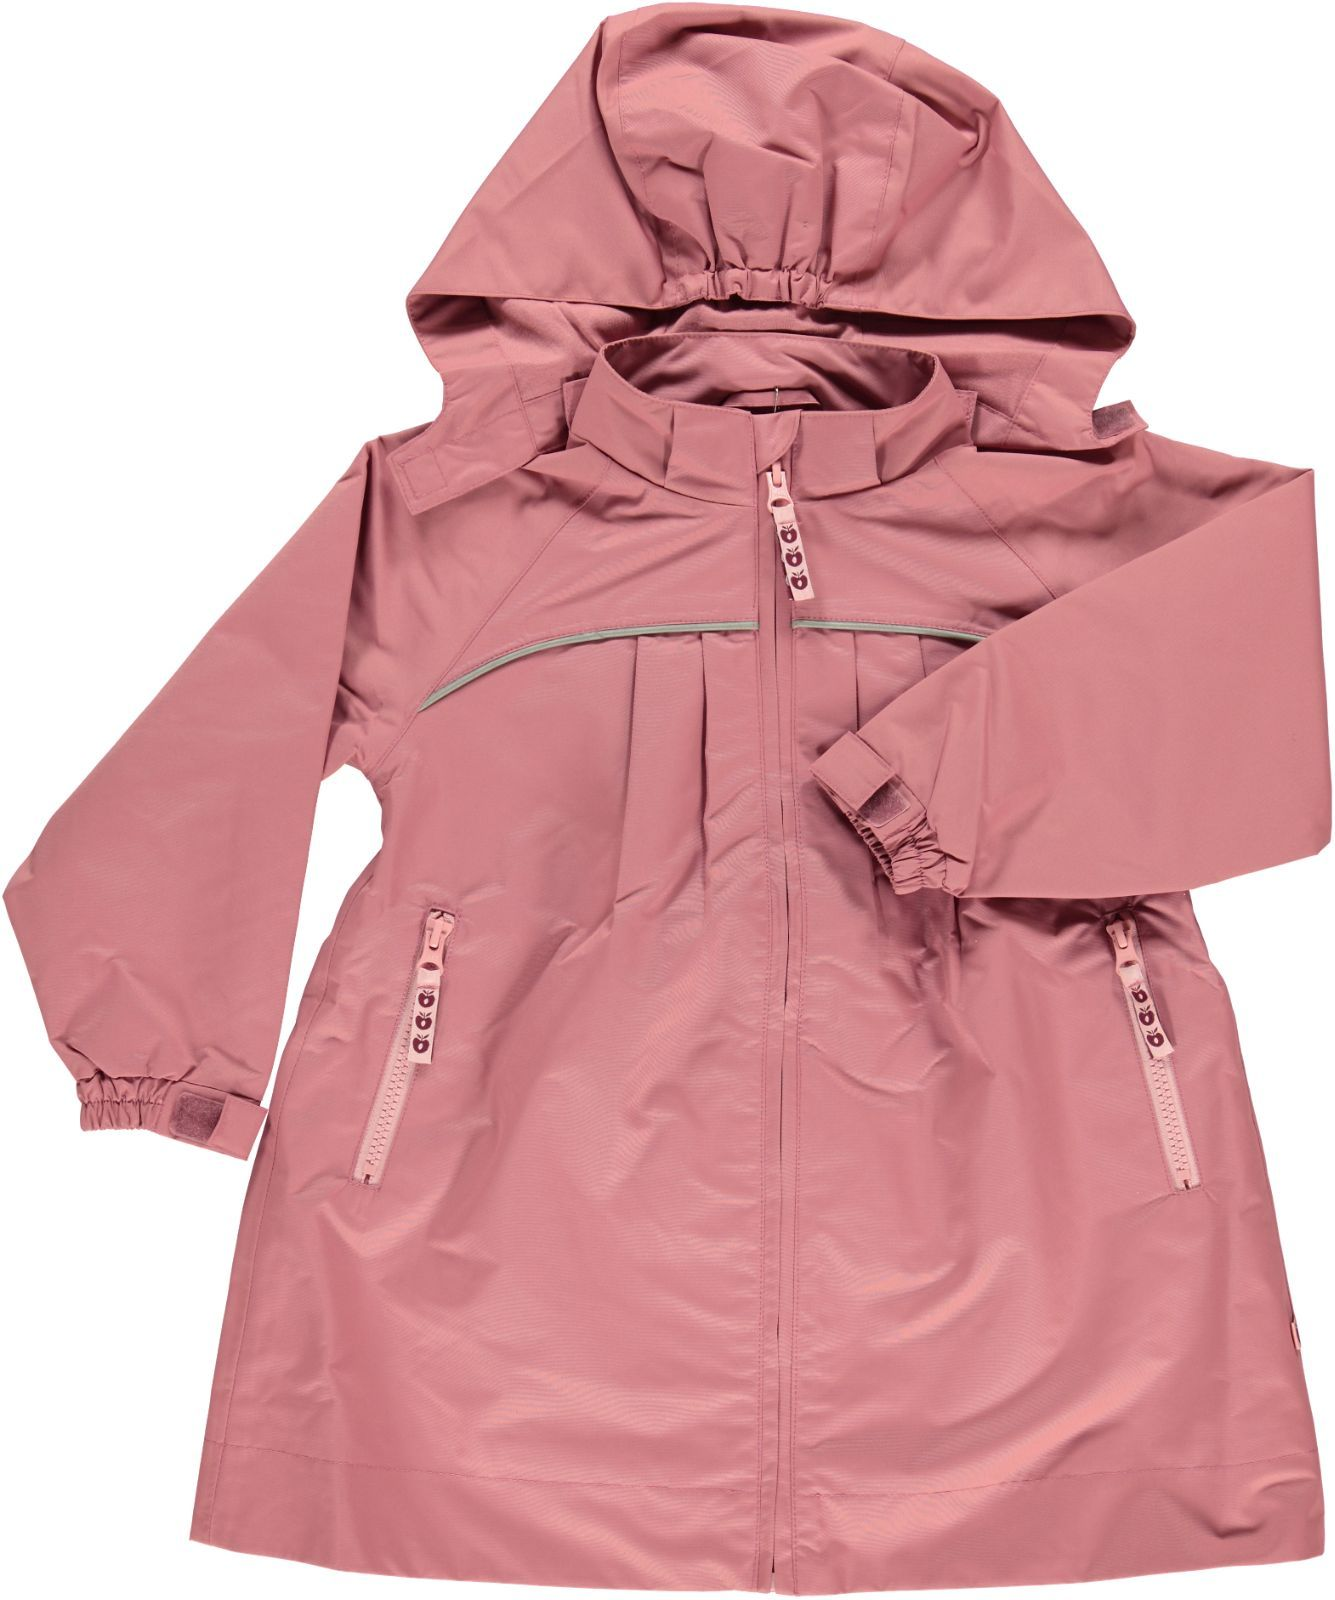 Spring/Fall jacket with hood